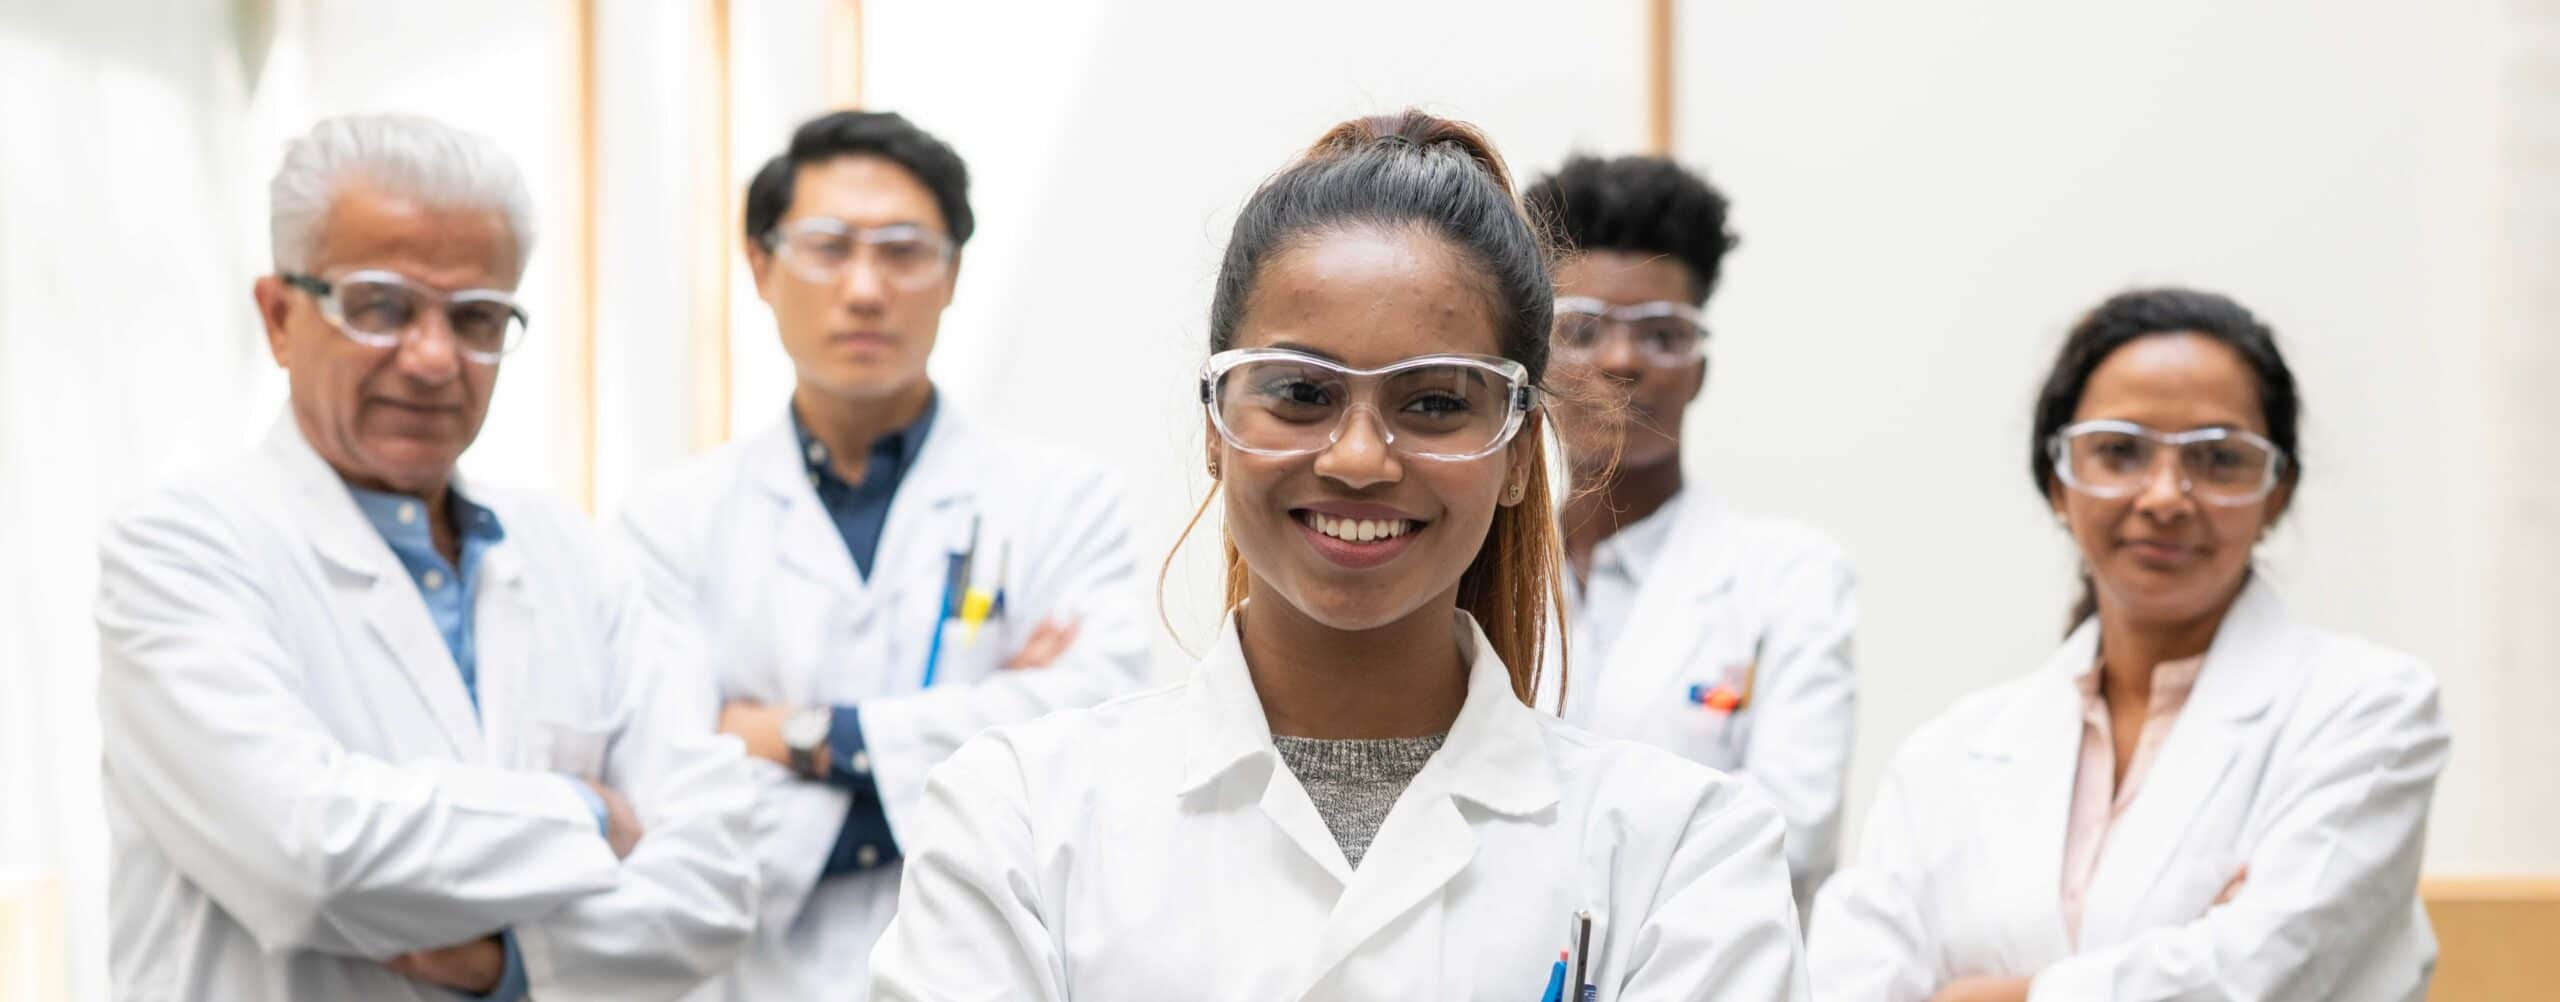 A multi-ethnic group of medical scientists stop and pause for a team portrait before continuing their work. They are each smiling while wearing lab coats and protective eye wear for safety.